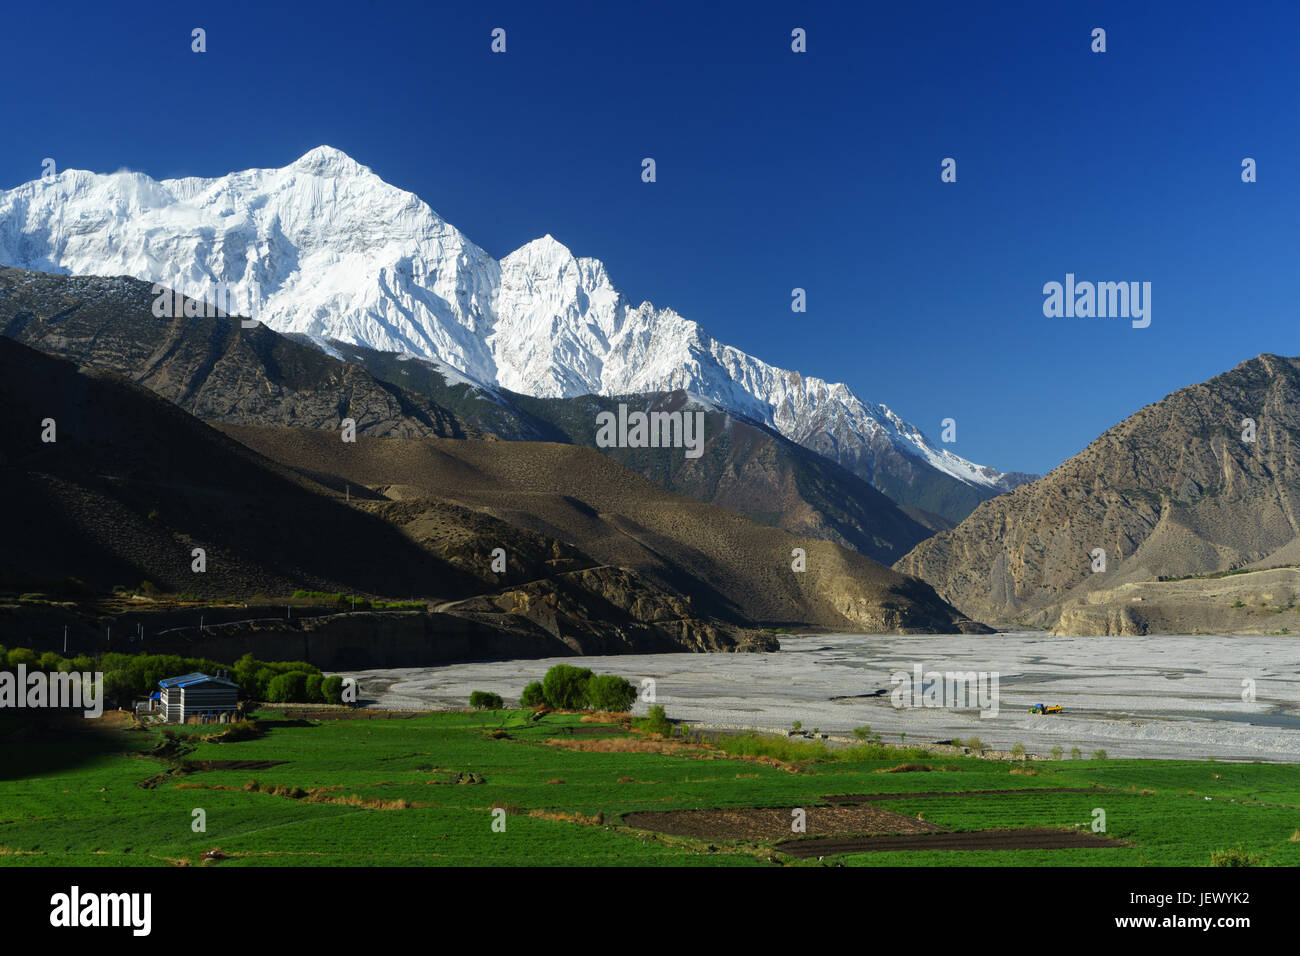 stunning-view-of-the-kali-gandaki-river-and-nilgiri-north-as-seen-JEWYK2.jpg